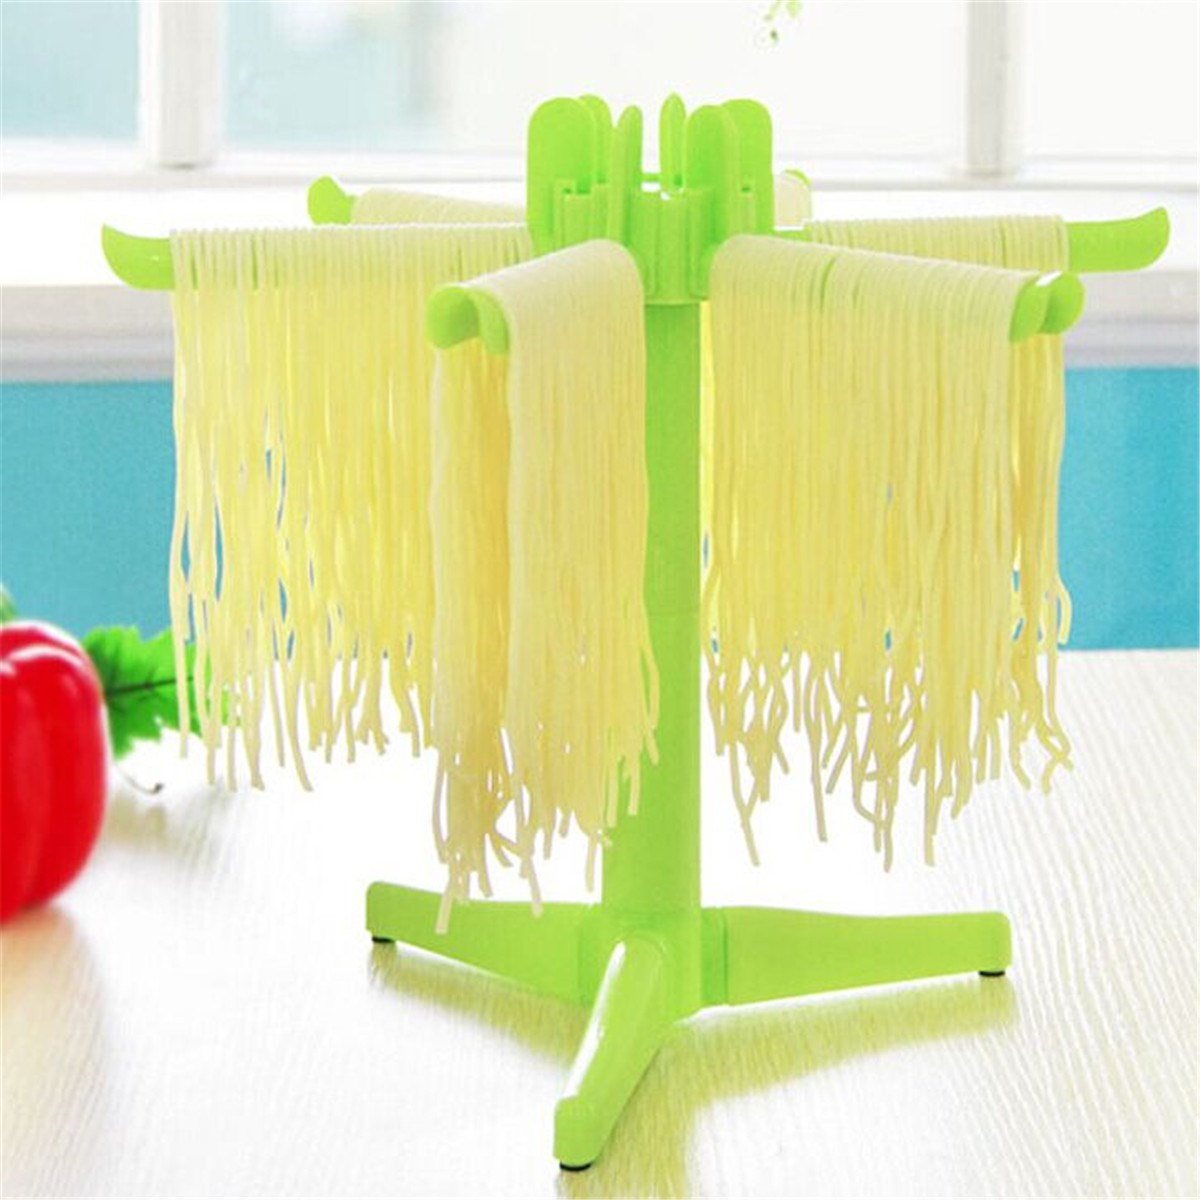 Household Noddle Drying Rack Practical Kitchen Pasta Stand Tools For Shelve Hanging Noddle Spaghetti Fettuccine Dryer(China (Mainland))